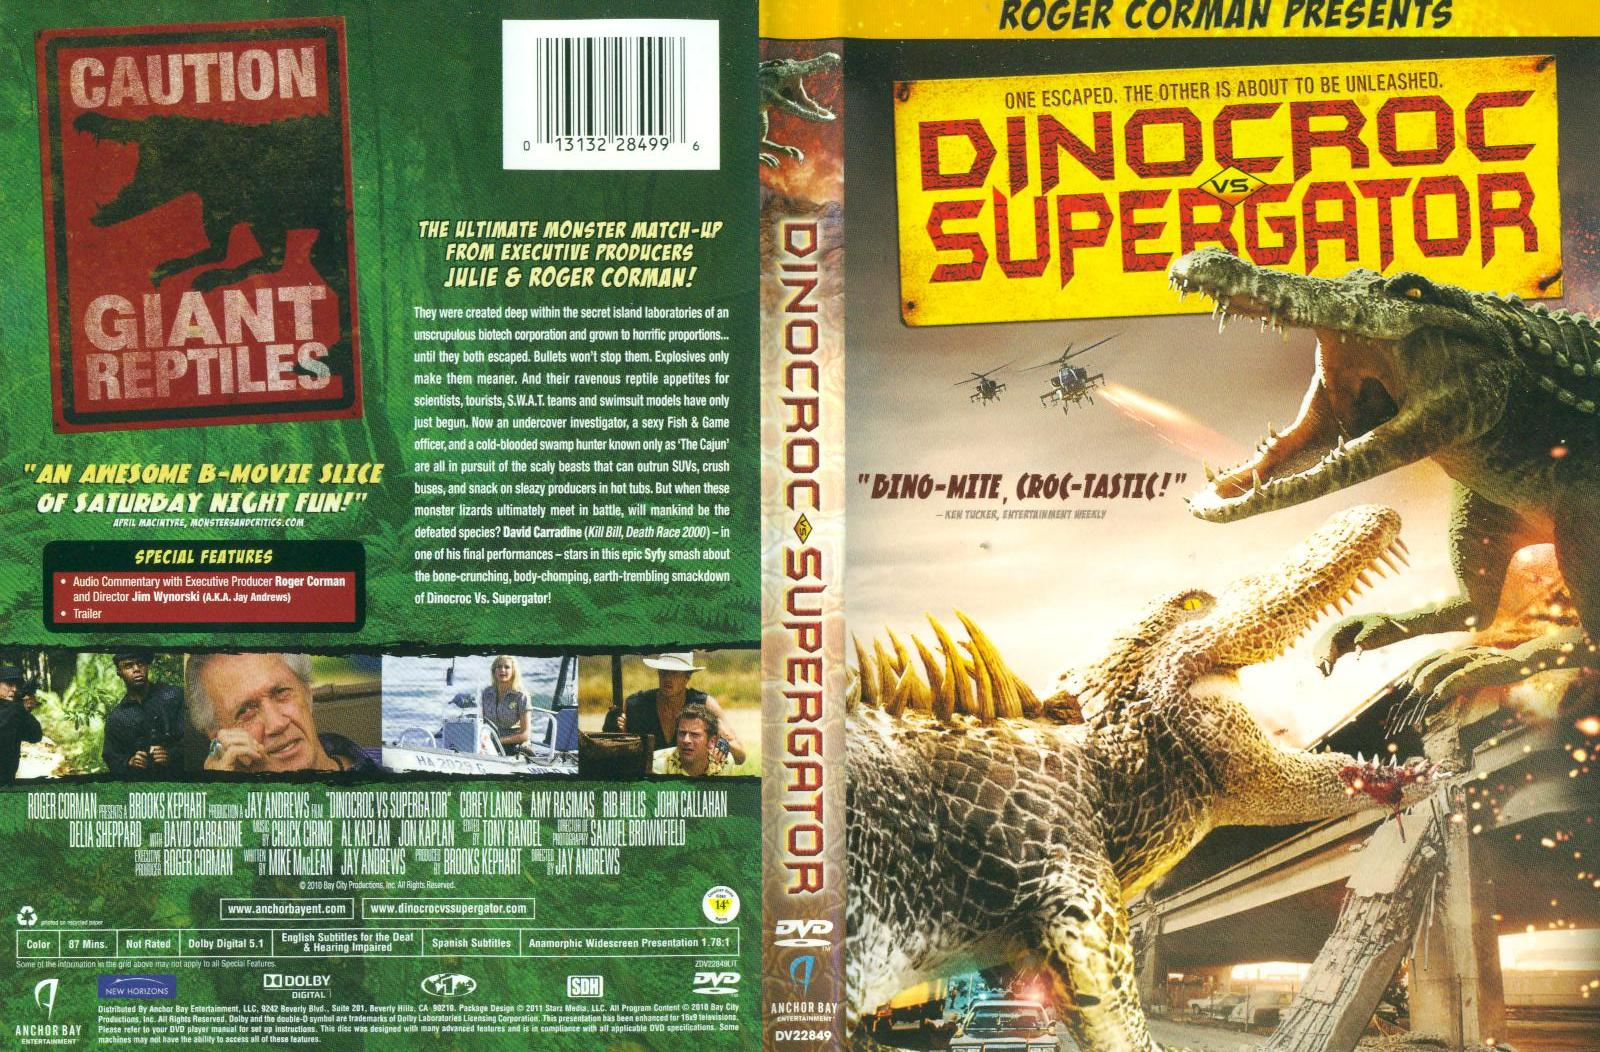 DINOCROC%2BVS.%2BSUPERGATOR ... rest of the first two thirds of the movie running from the Supergator.